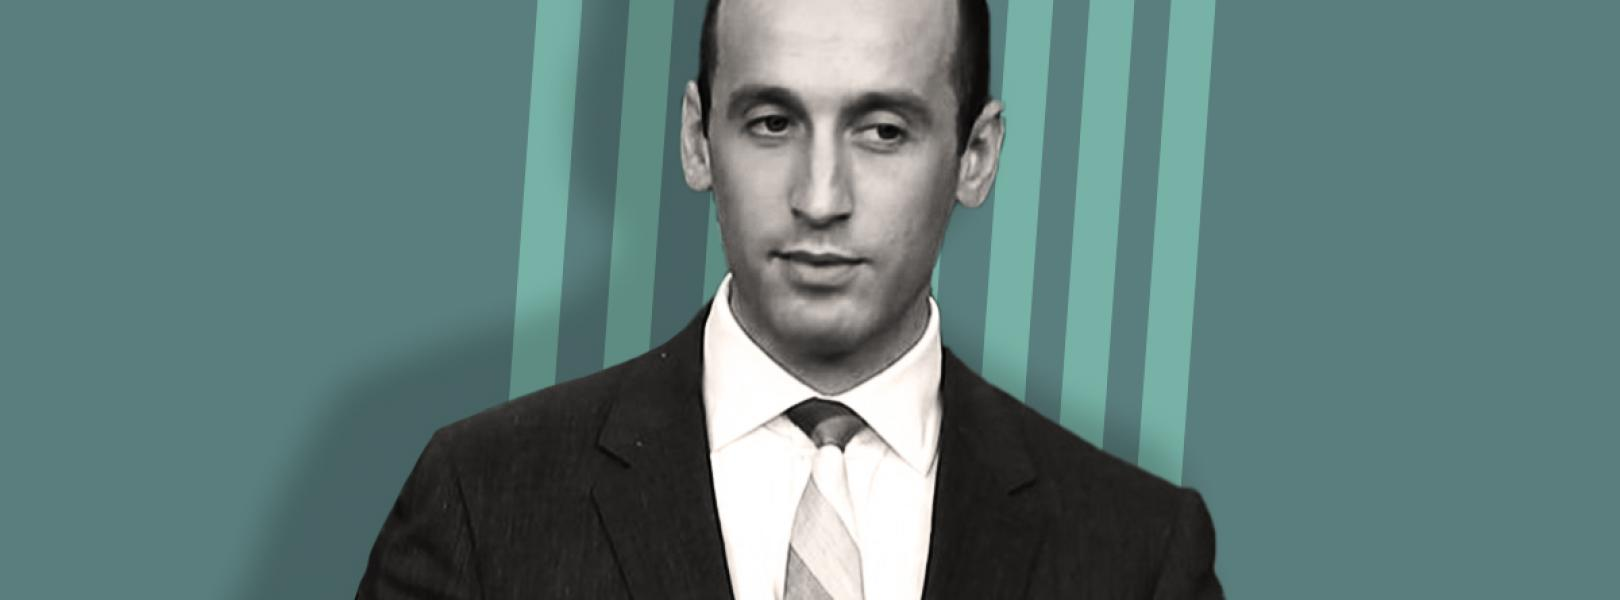 Fox News hasn't covered Stephen Miller's white nationalist emails